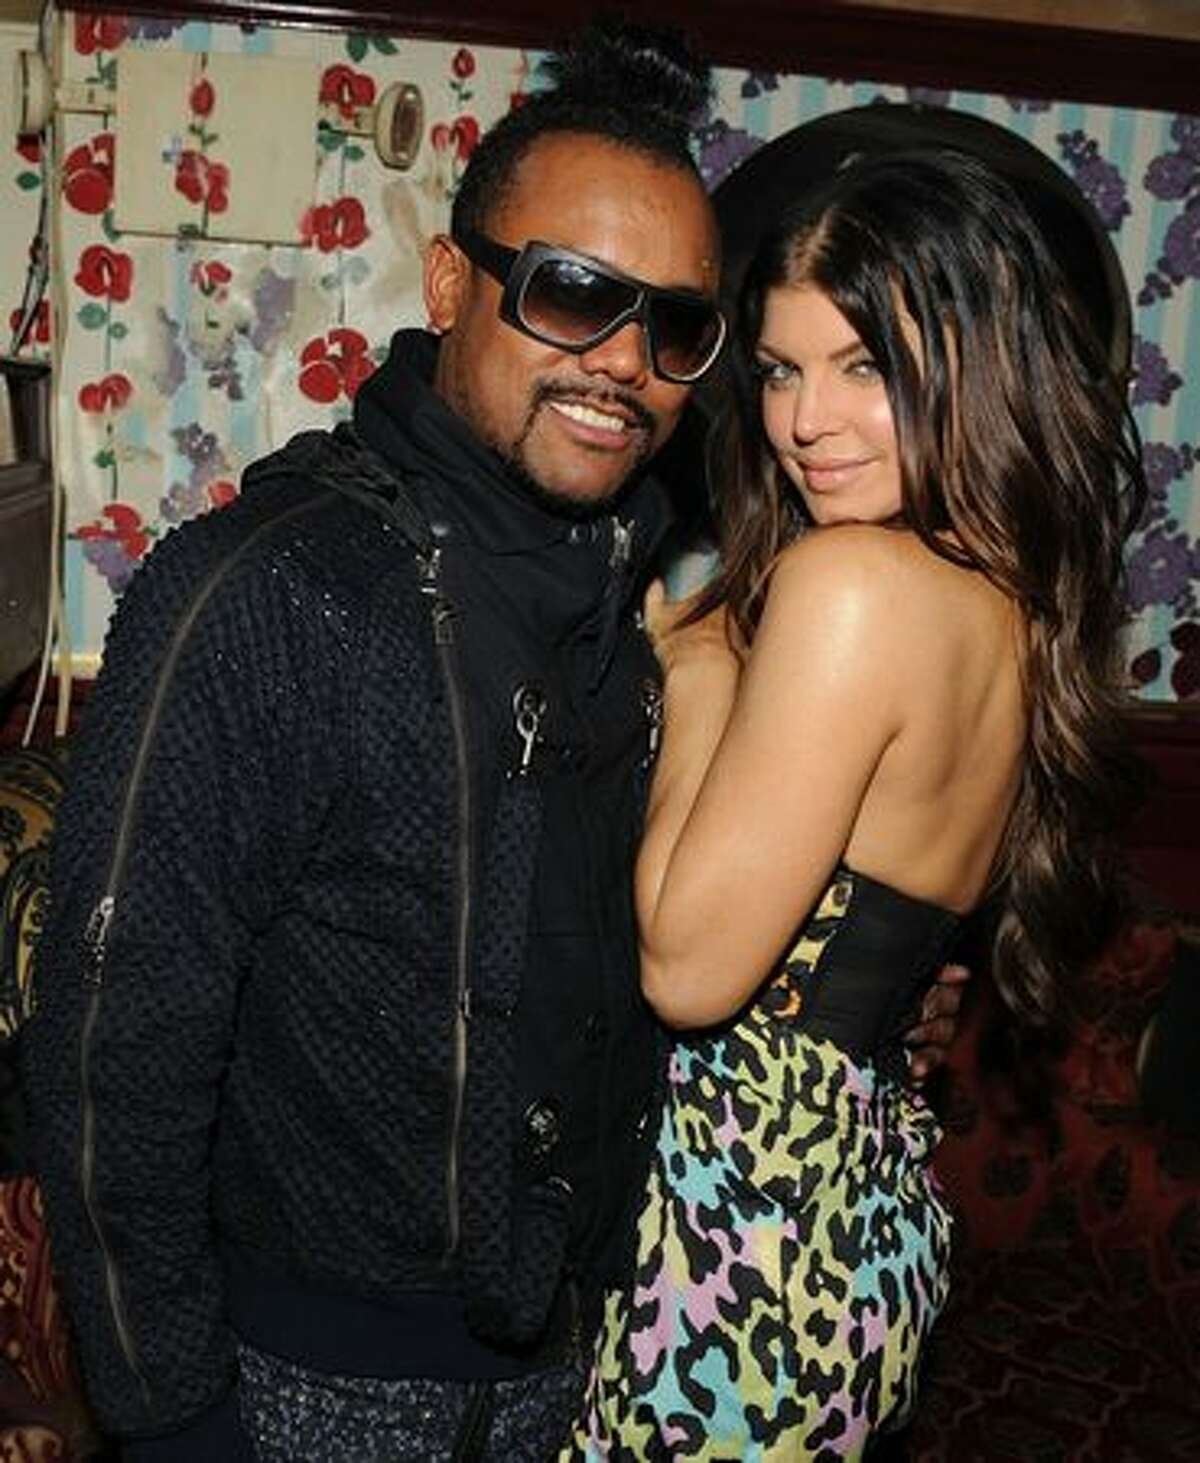 apl.de.ap and Fergie of The Black Eyed Peas attend The Cinema Society & D&G after party for